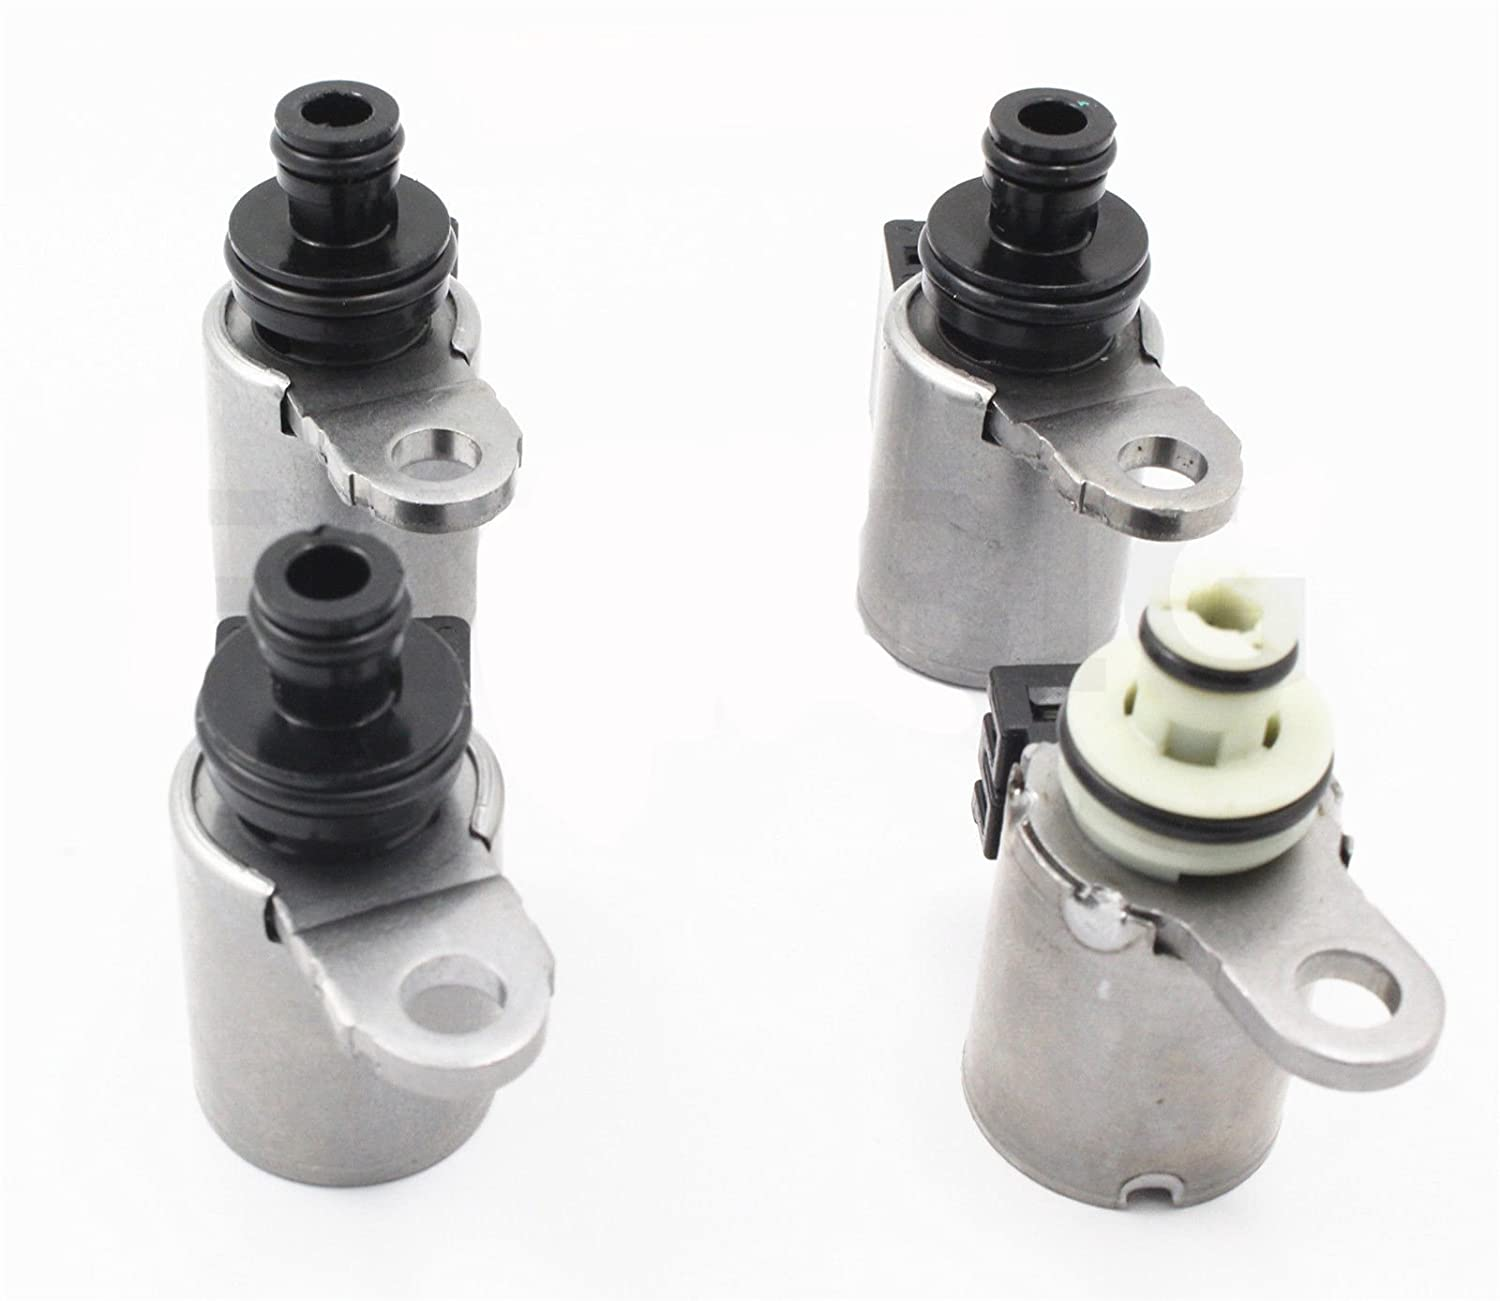 JF011E REOF10A SOLENOID KIT 4pc 2007 AND UP NISSAN